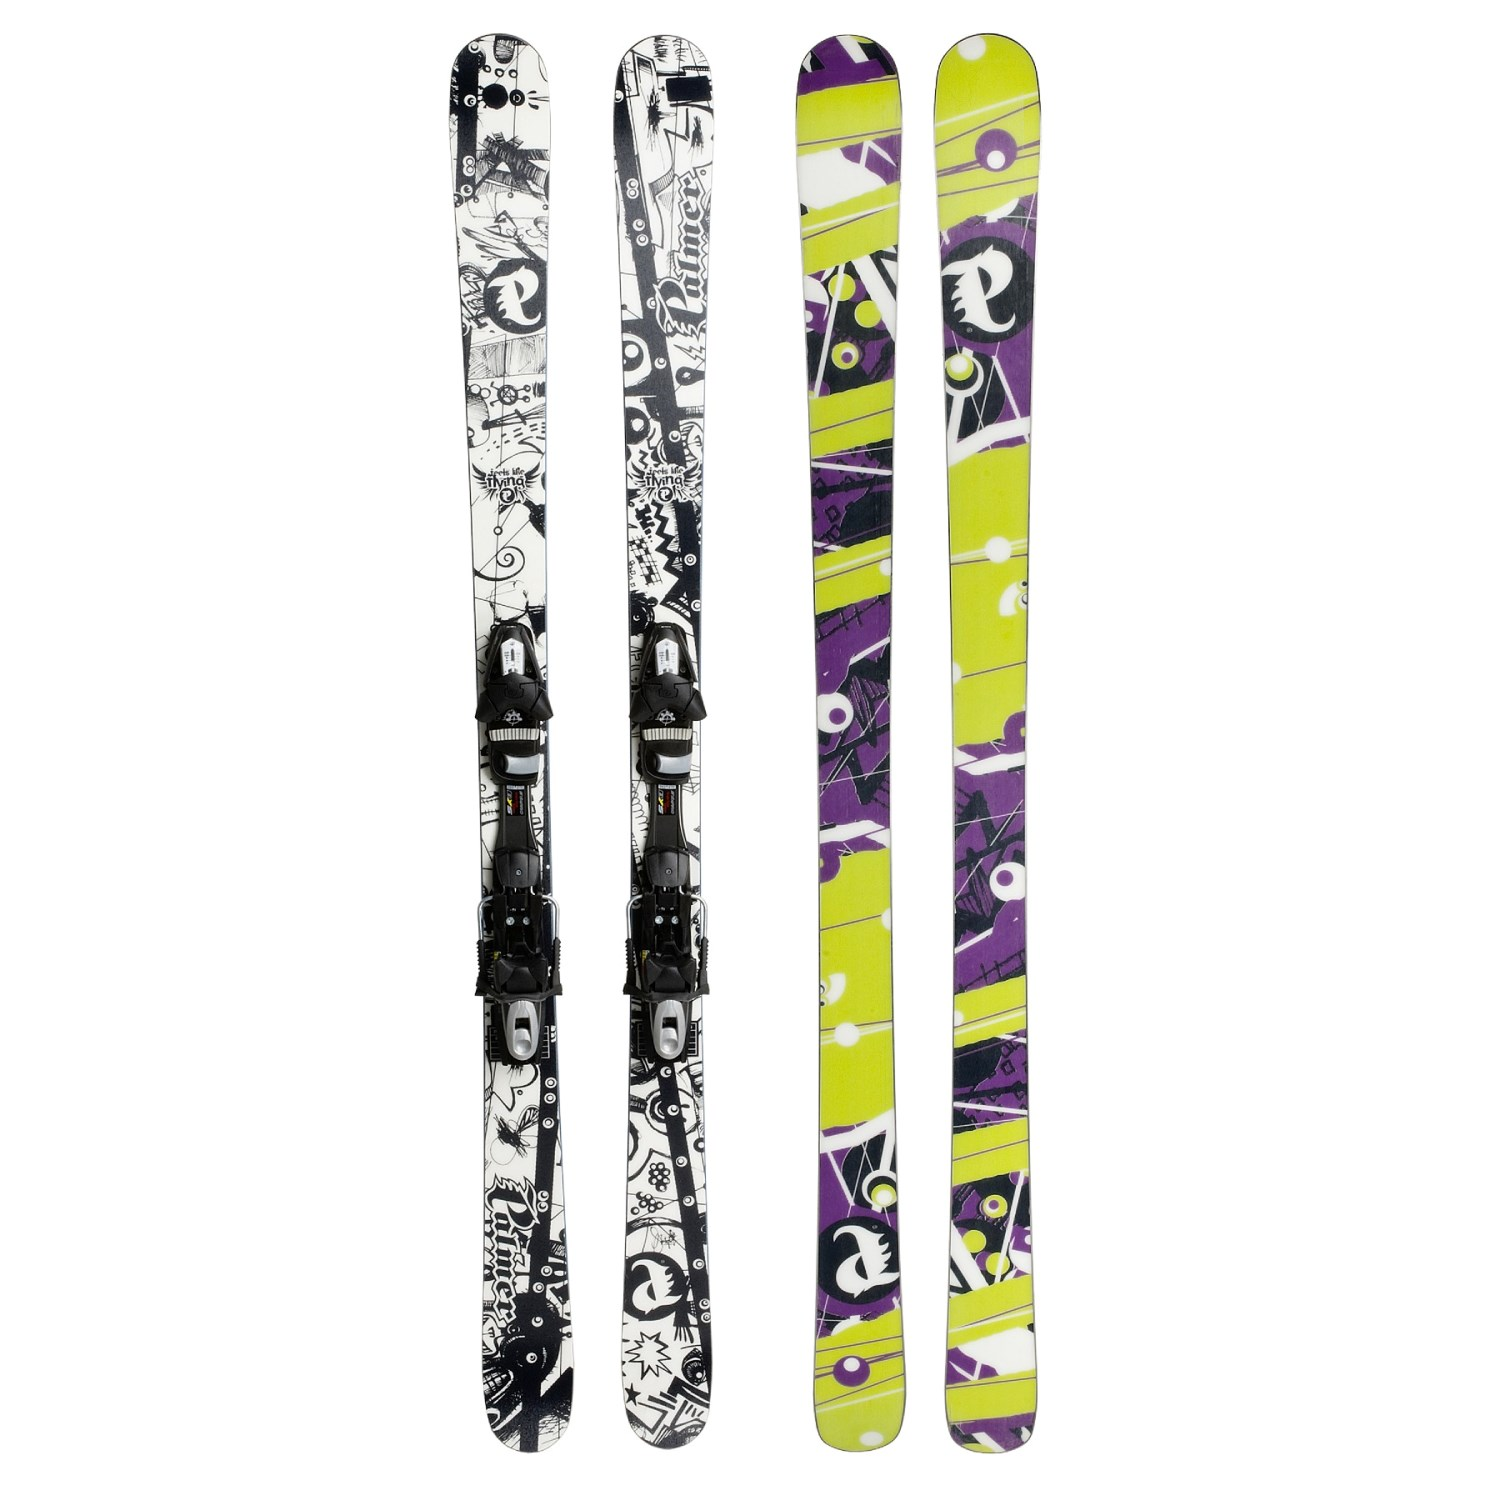 Palmer P03 Park Twin-Tip Skis With Tyrolia SP120 Sympro